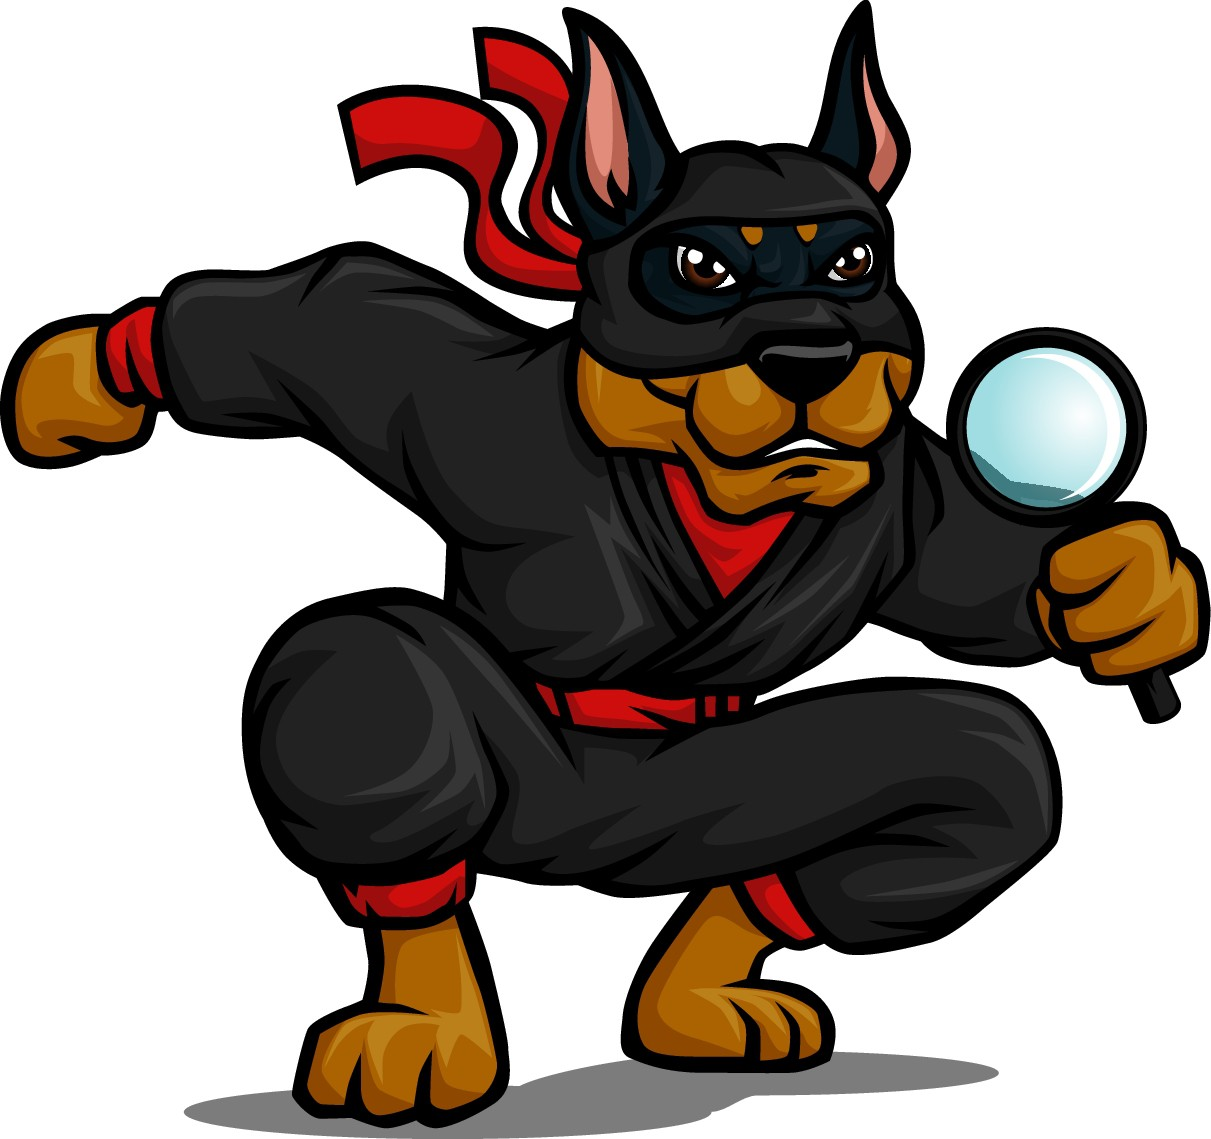 Ninja version of Autopsy dog